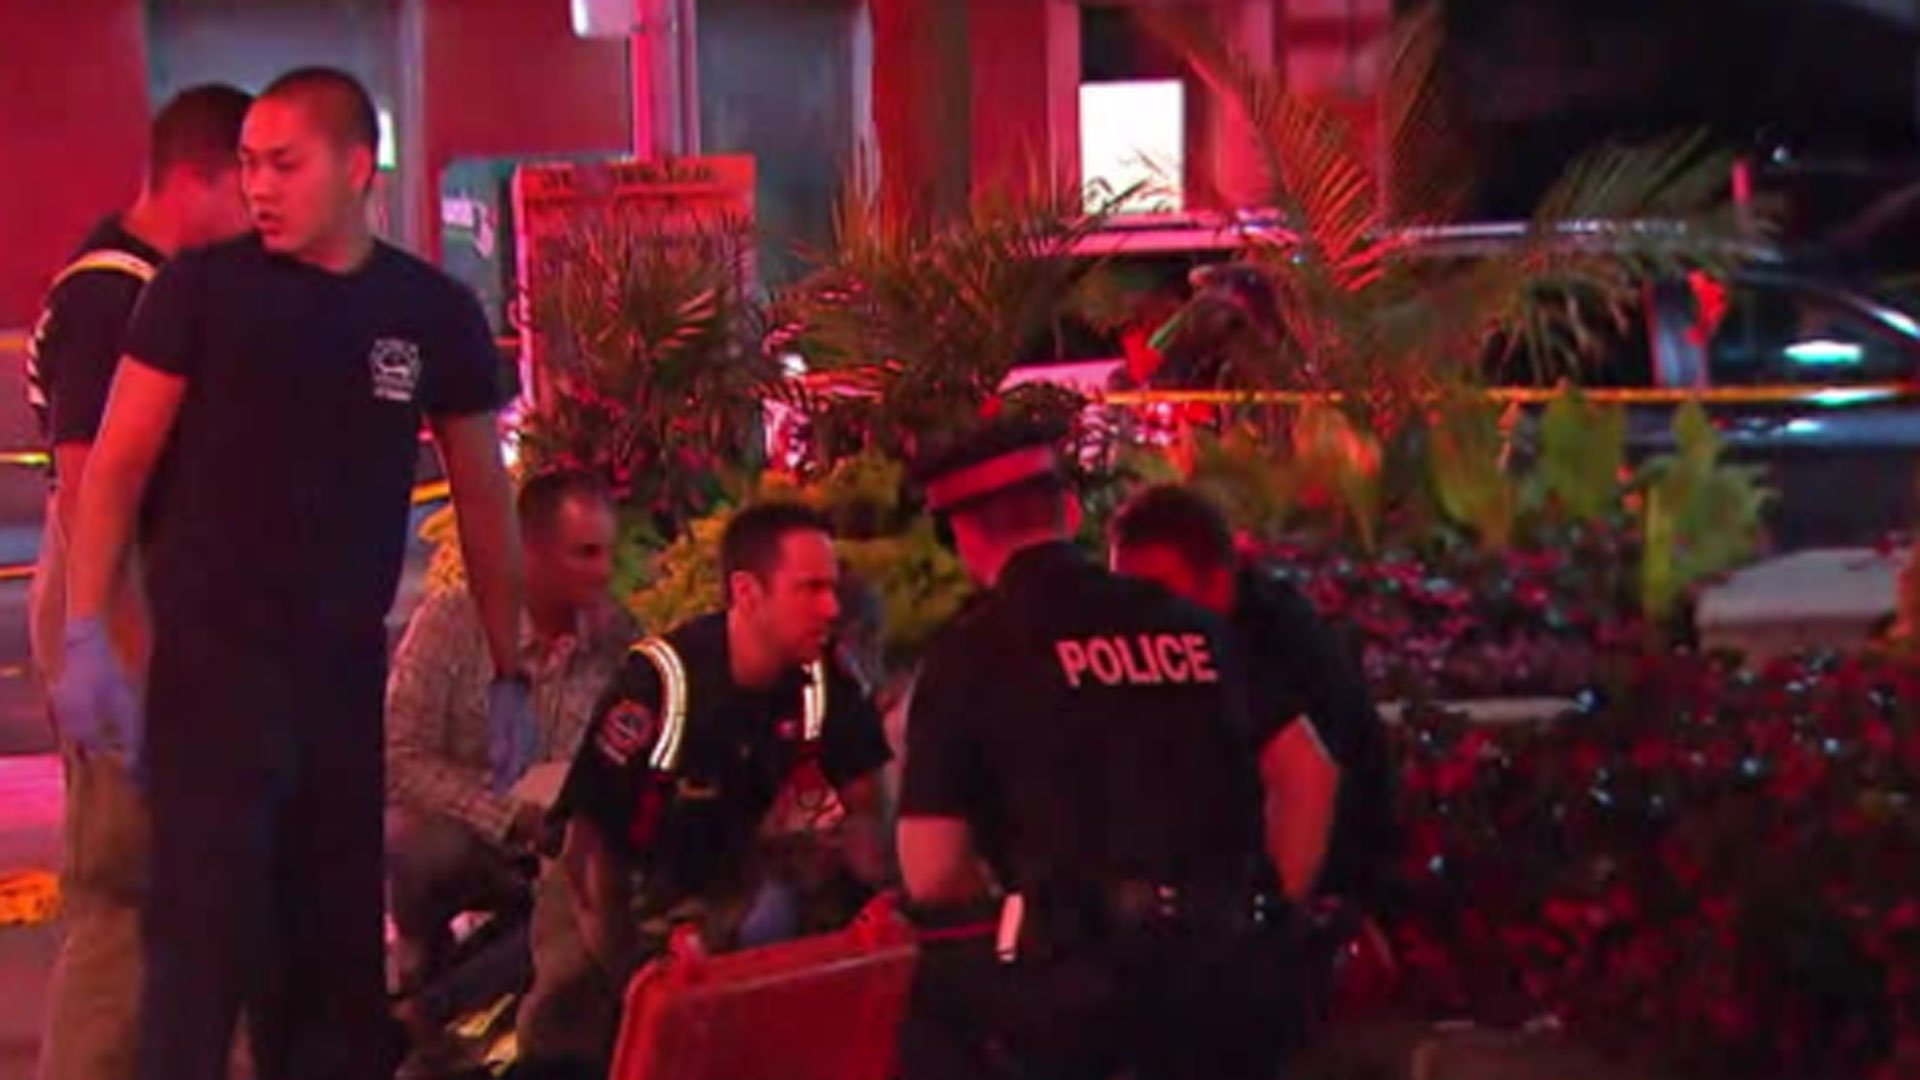 DEVELOPING: Nine people shot on the Danforth; Police say suspected shooter dead https://t.co/tilc3WVJBl https://t.co/PxSkGFyEv7